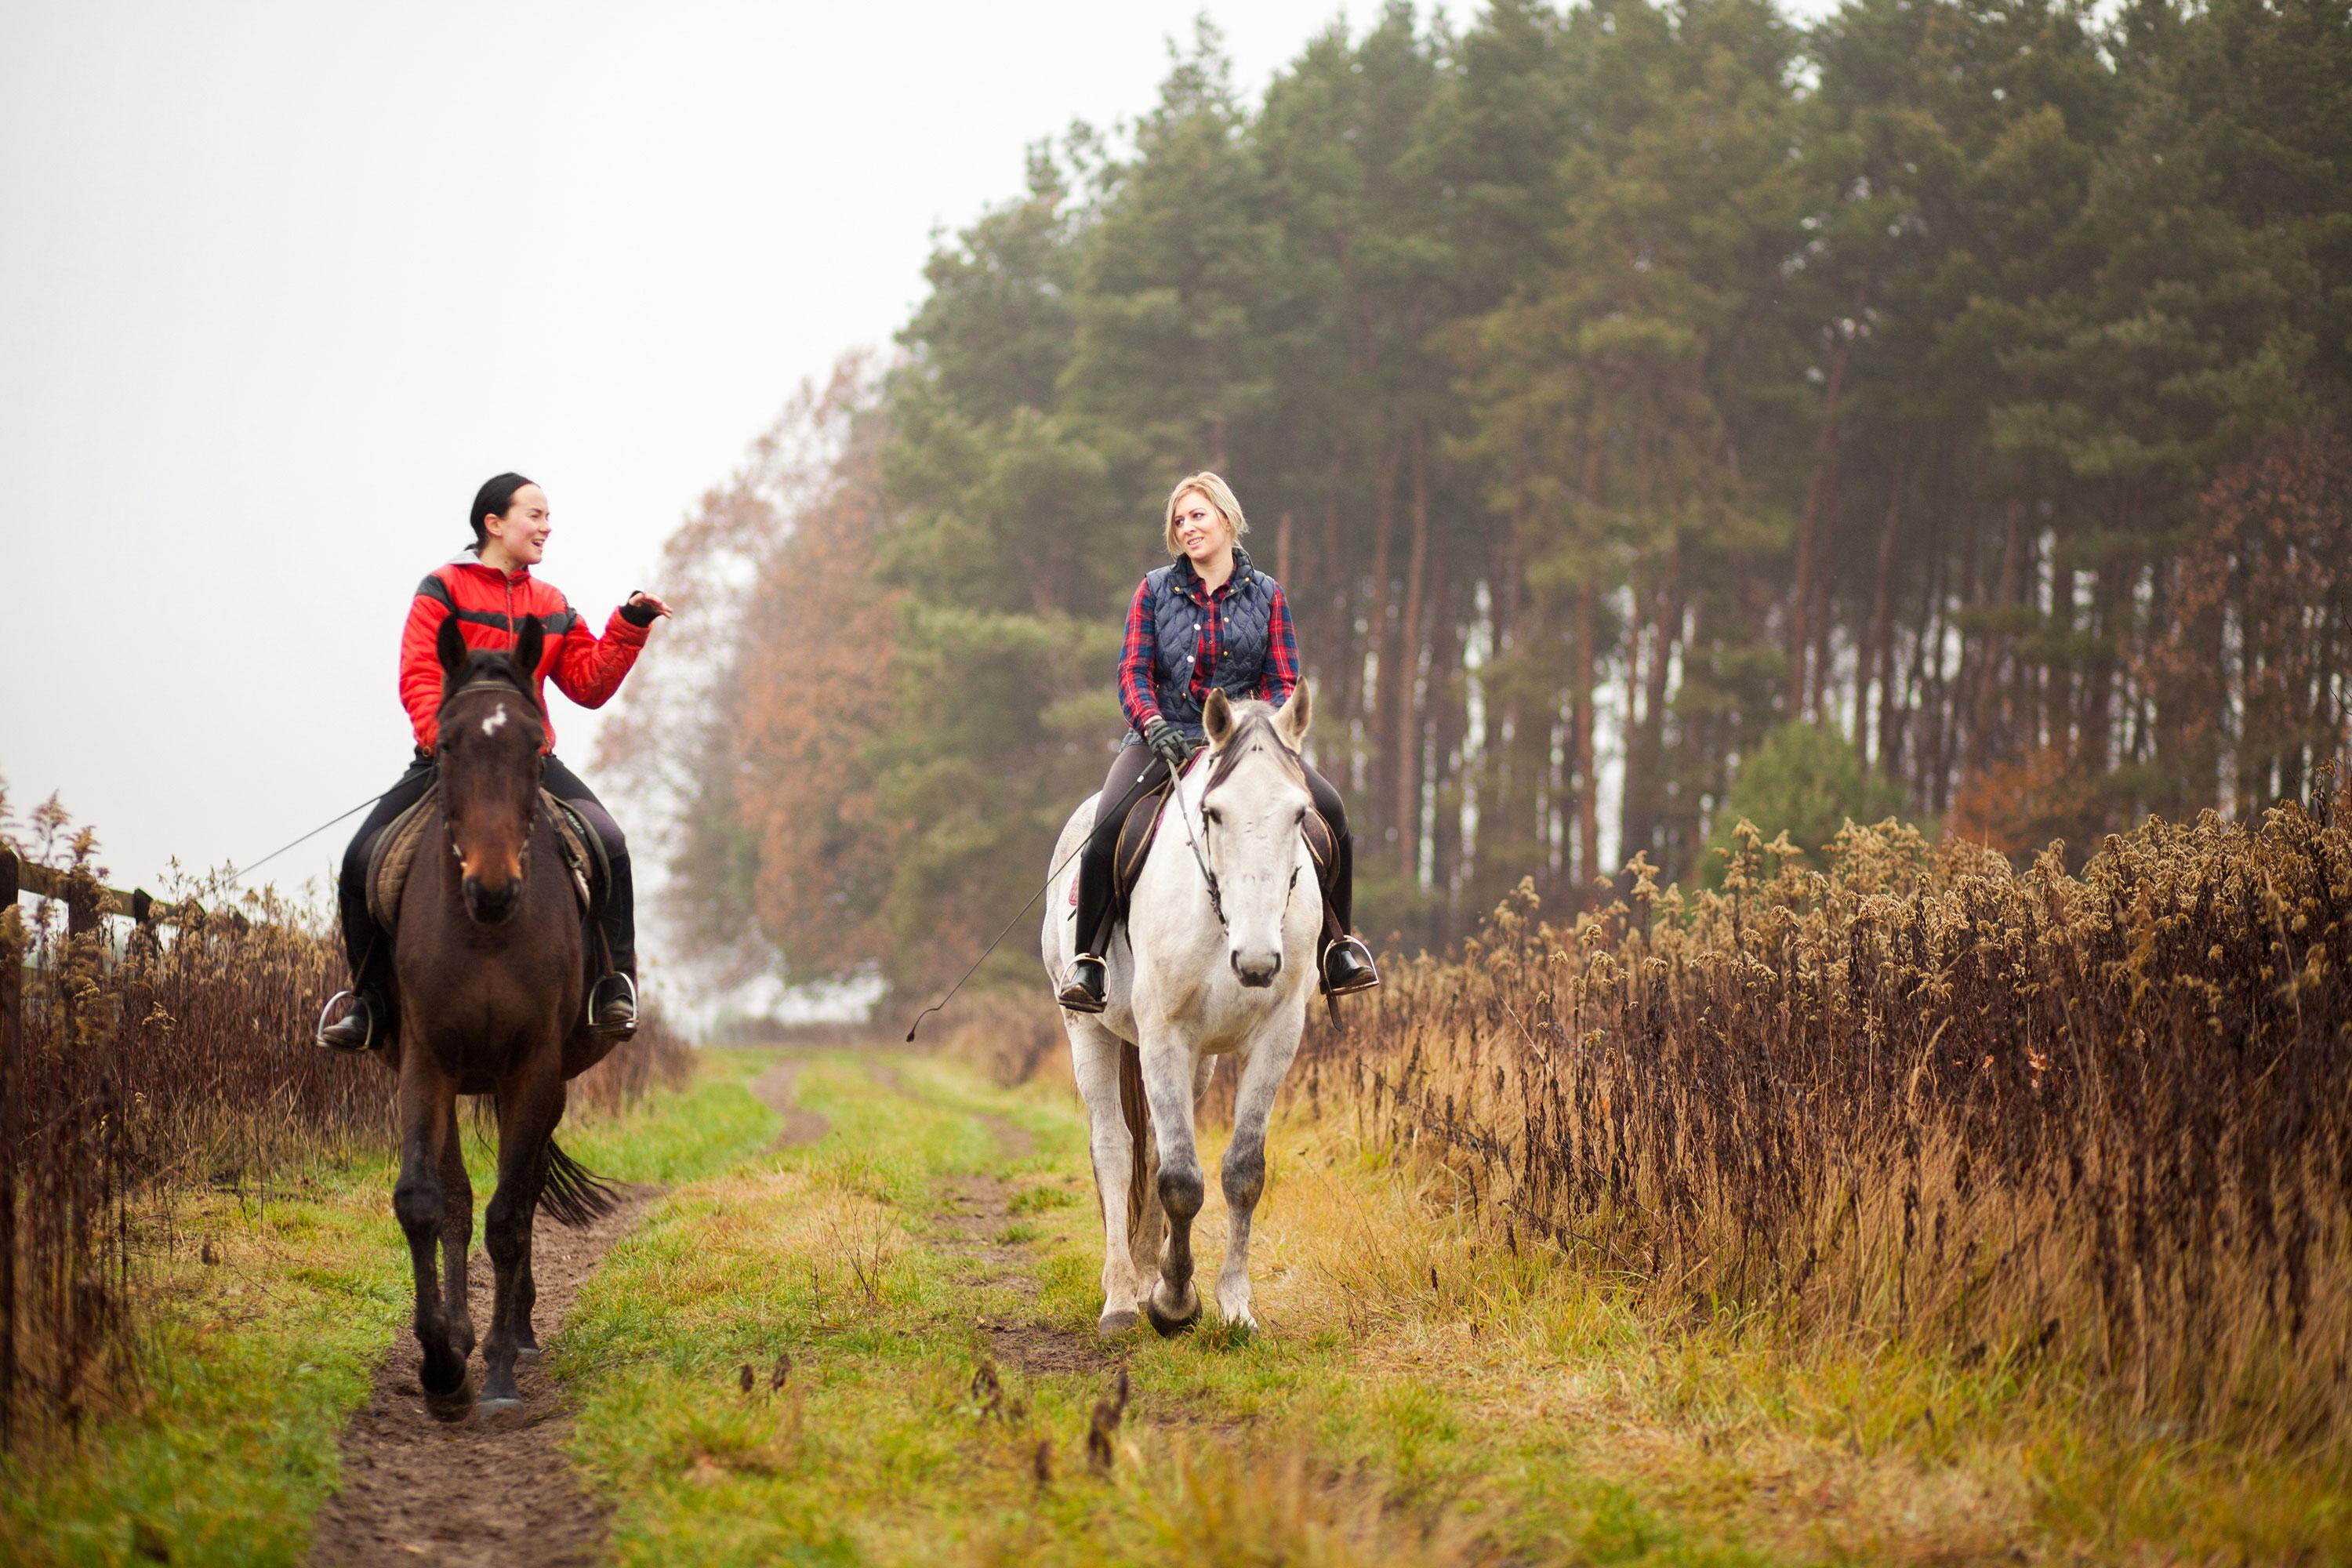 Two Ladies on Horses - Equitation Science